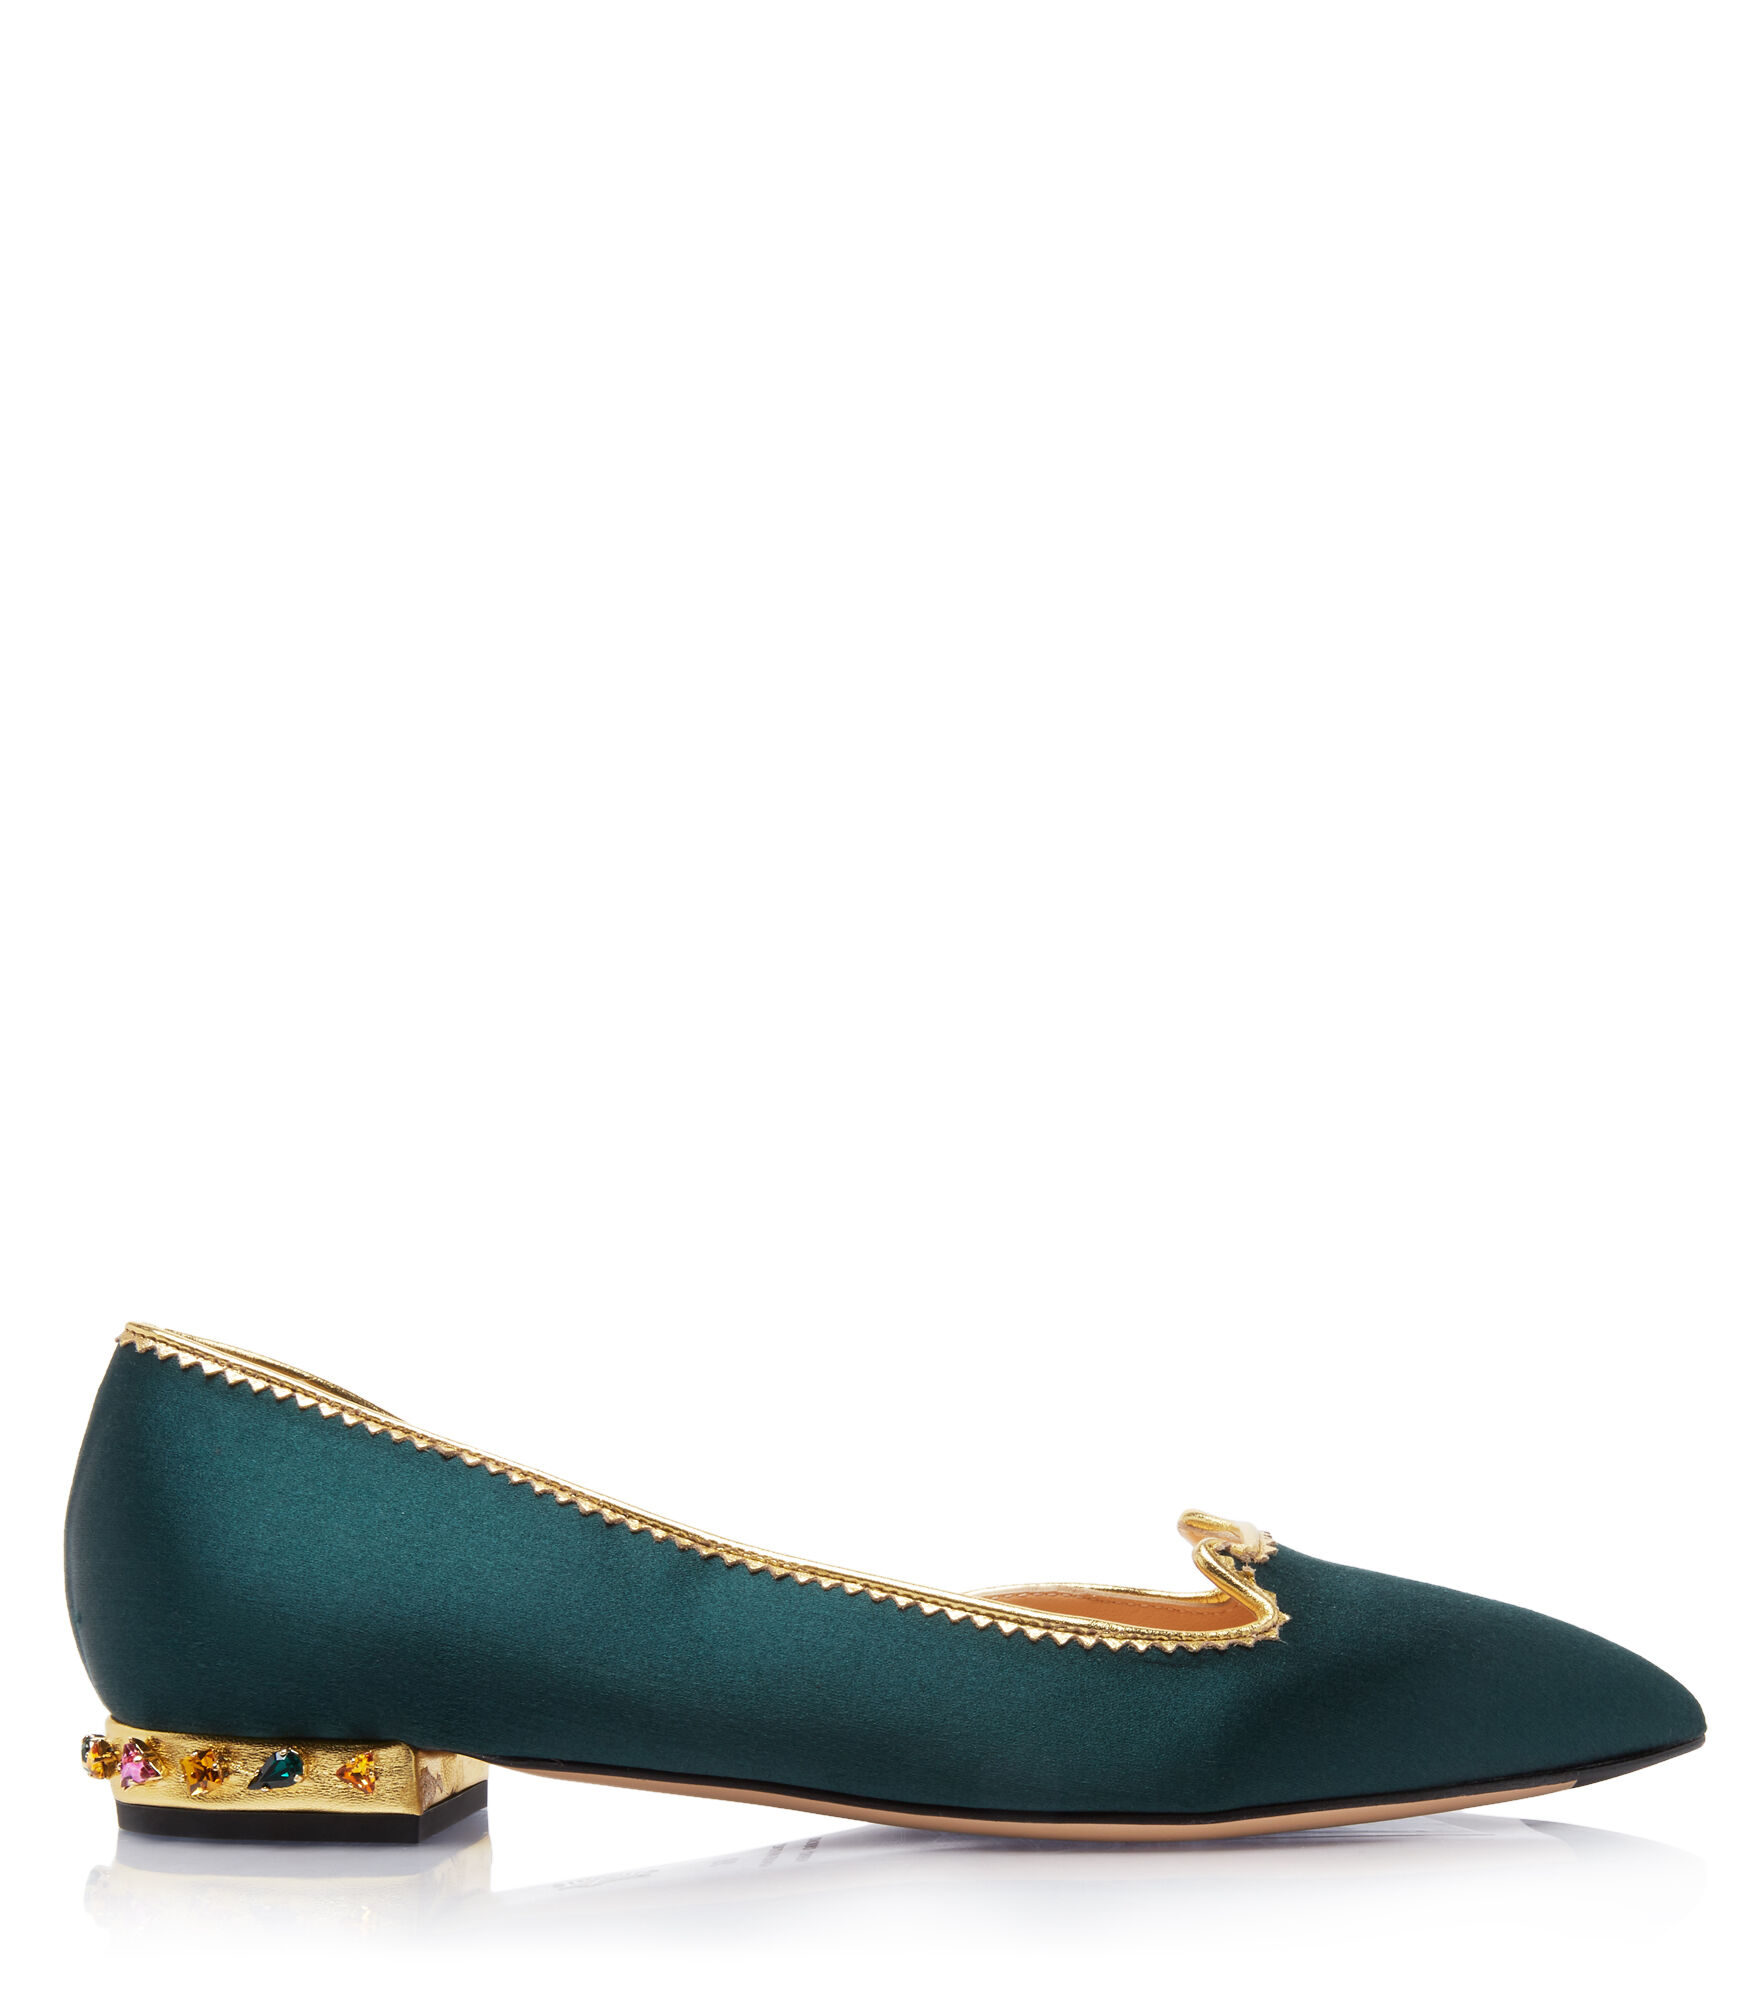 Charlotte Olympia Bejewelled Kitty D'Orsay In Bottle Green & Multicolor